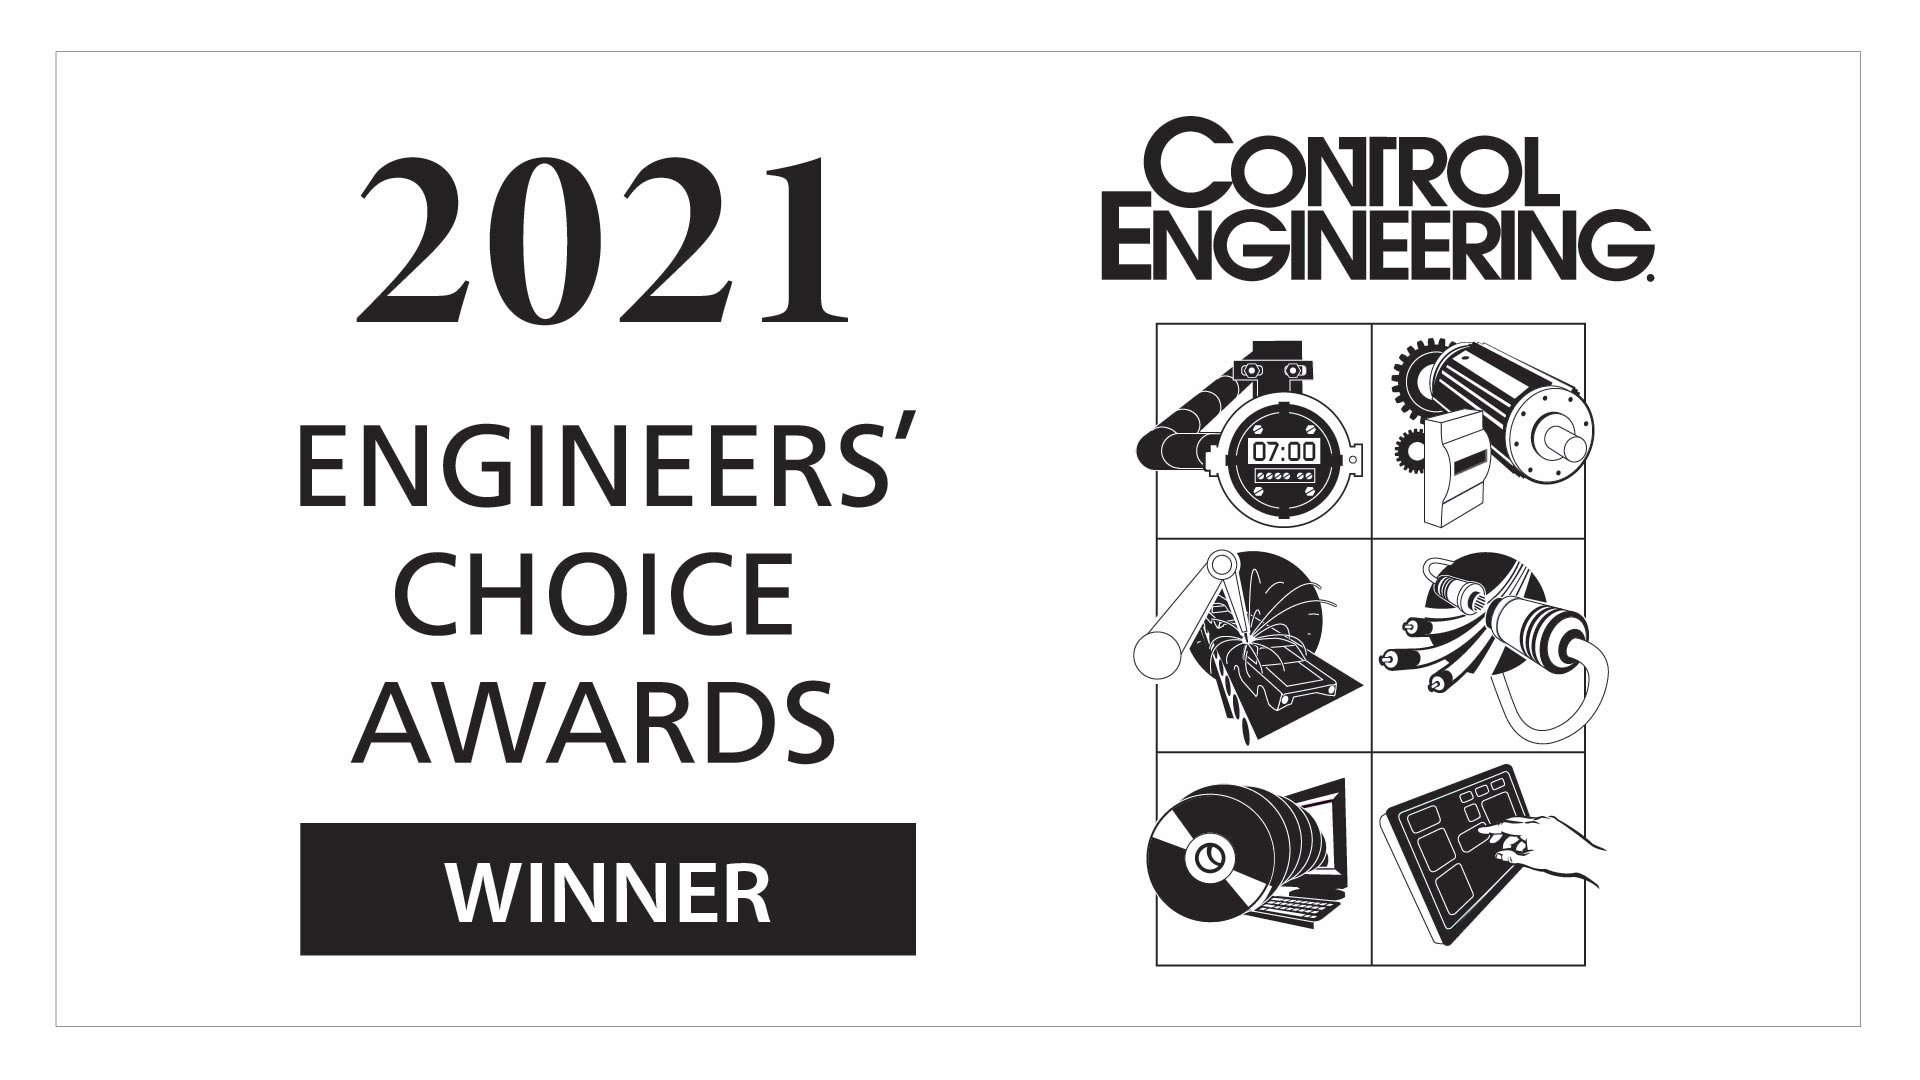 Control Engineering誌の「2021 Engineers Choice」賞の受賞者ロゴ